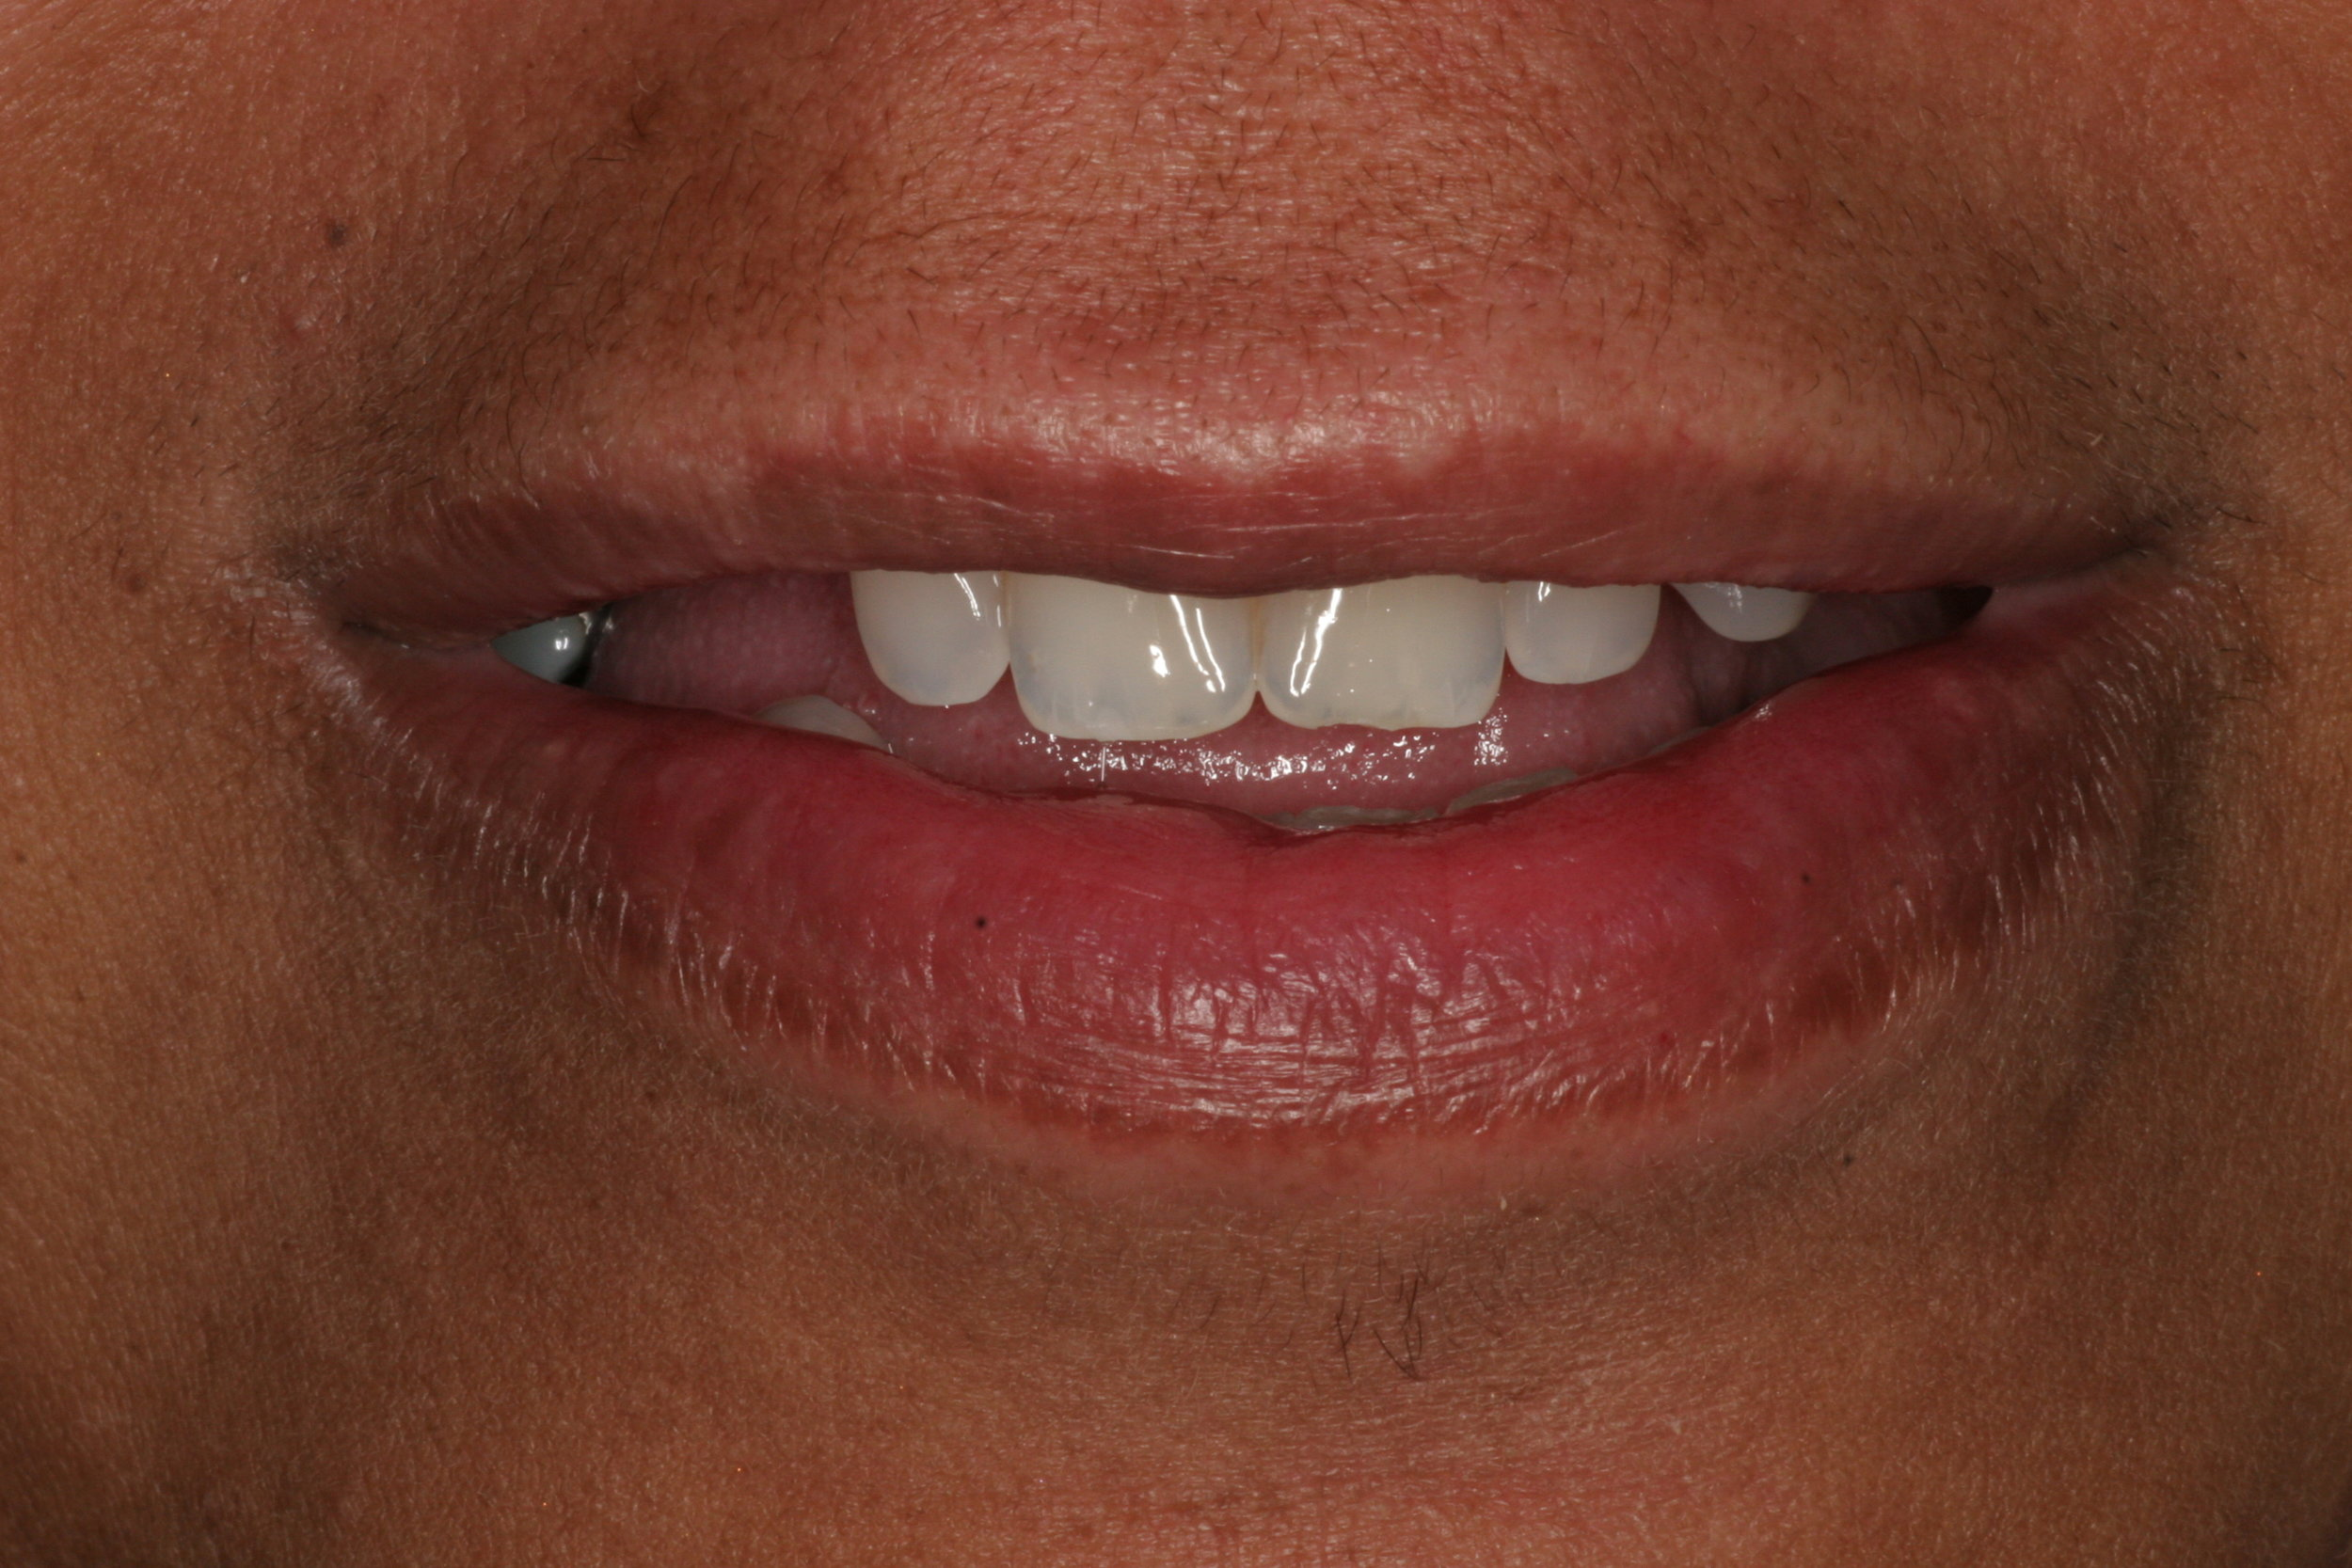 Female, 58 years old Interested in replacing missing teeth with dental implants.